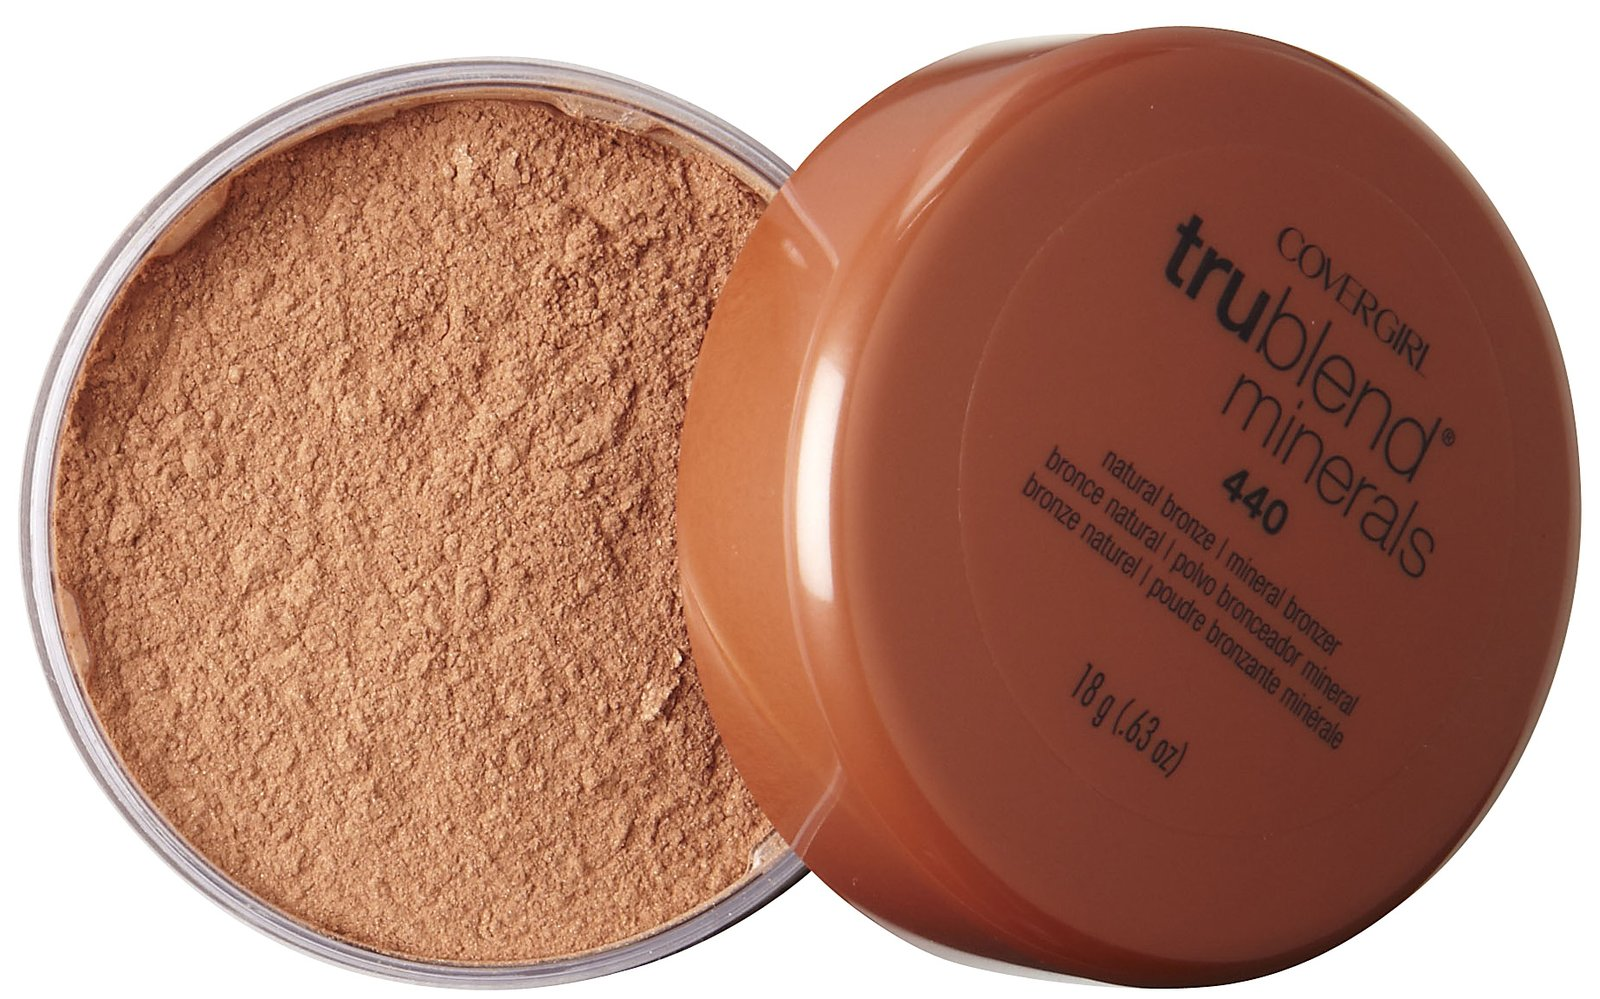 Covergirl TruBlend Minerals Bronzer ($8) comes with its own powder puff, making application a snap.